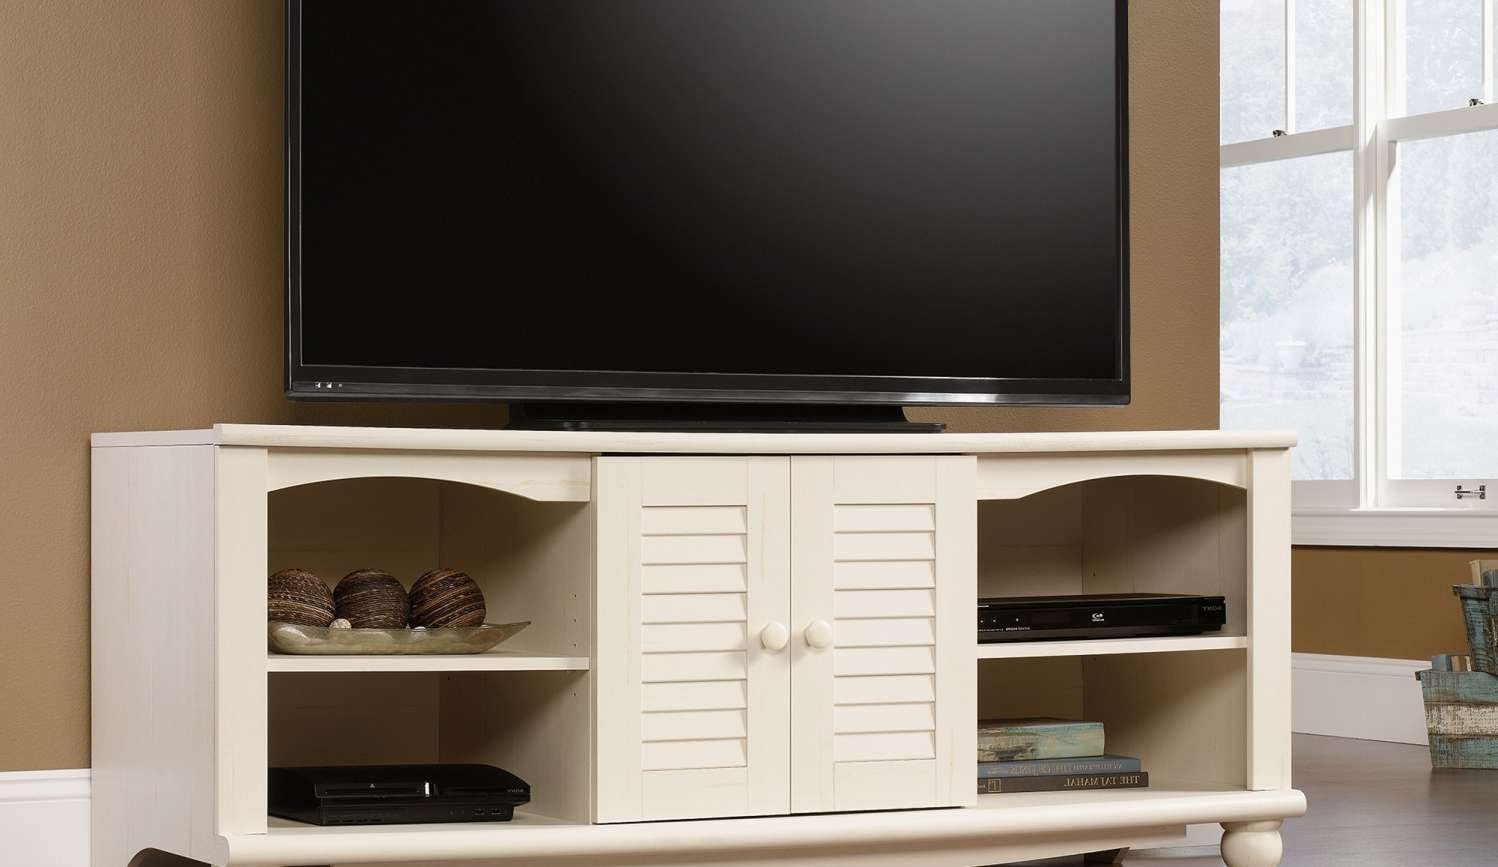 Tv : White Tv Stands Wonderful Maple Tv Stands For Flat Screens With Regard To Maple Tv Stands For Flat Screens (View 11 of 15)